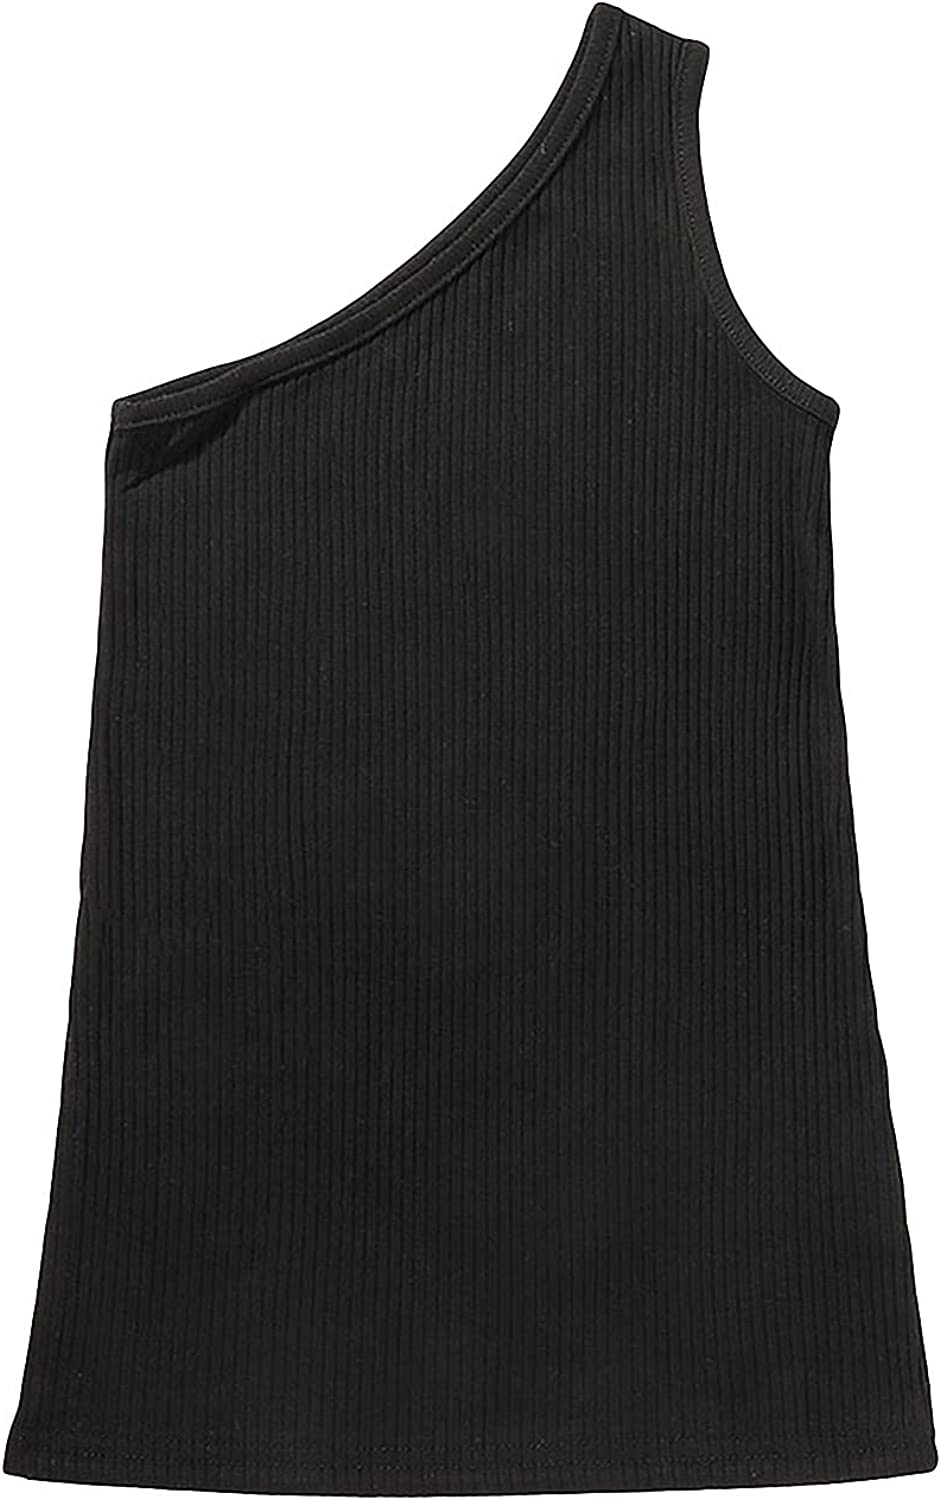 Arvbitana Toddler Baby Max 42% OFF 2021 autumn and winter new Girl Summer One Shoulder Ribbed Slee Vest